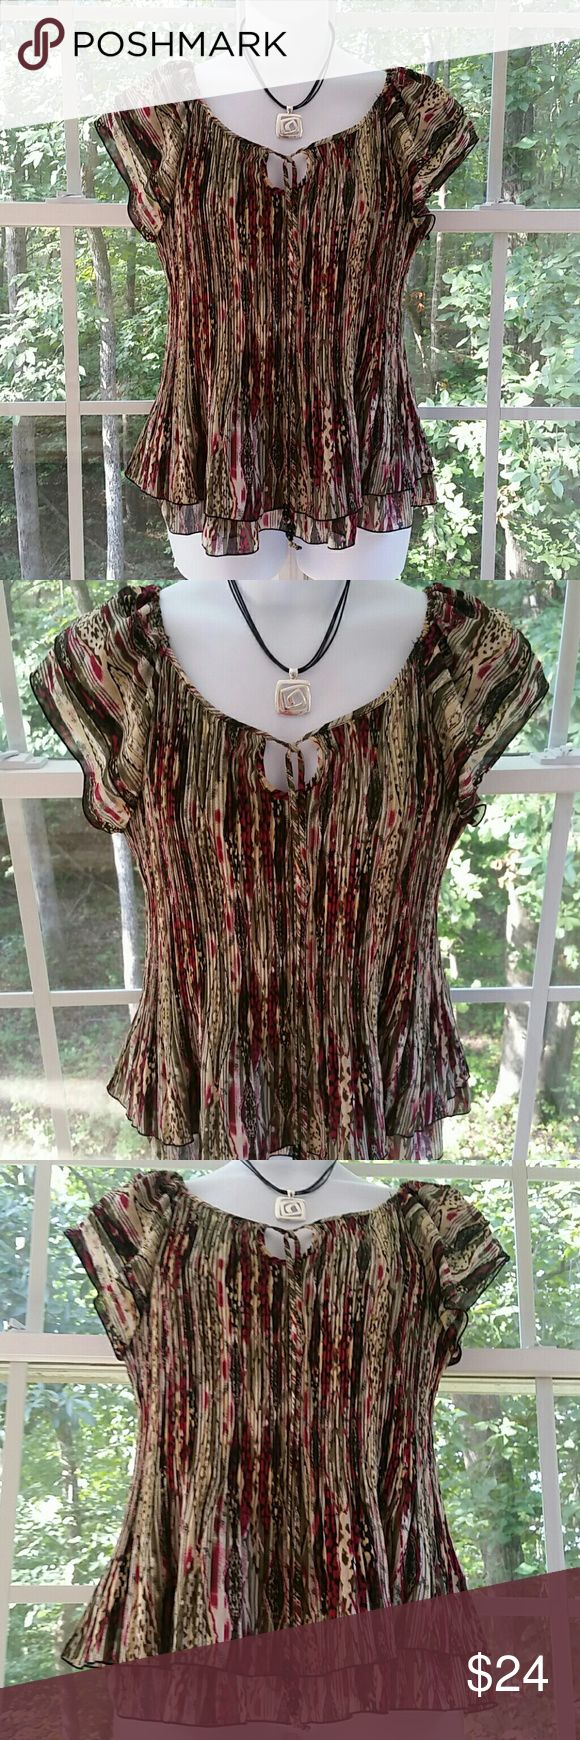 🆕ND New Directions Plus Size Tiered Top Super pretty multicolored tiered top from New Directions. Crinkle style. Keyhole opening in front with ties that have decorative beads on the ends. The tiered sleeves and bottom are gorgeous. Lining and shell 100% Polyester. Excellent condition, no issues. Don't miss out on this lovely top! Xoxoxoxo new directions Tops Blouses